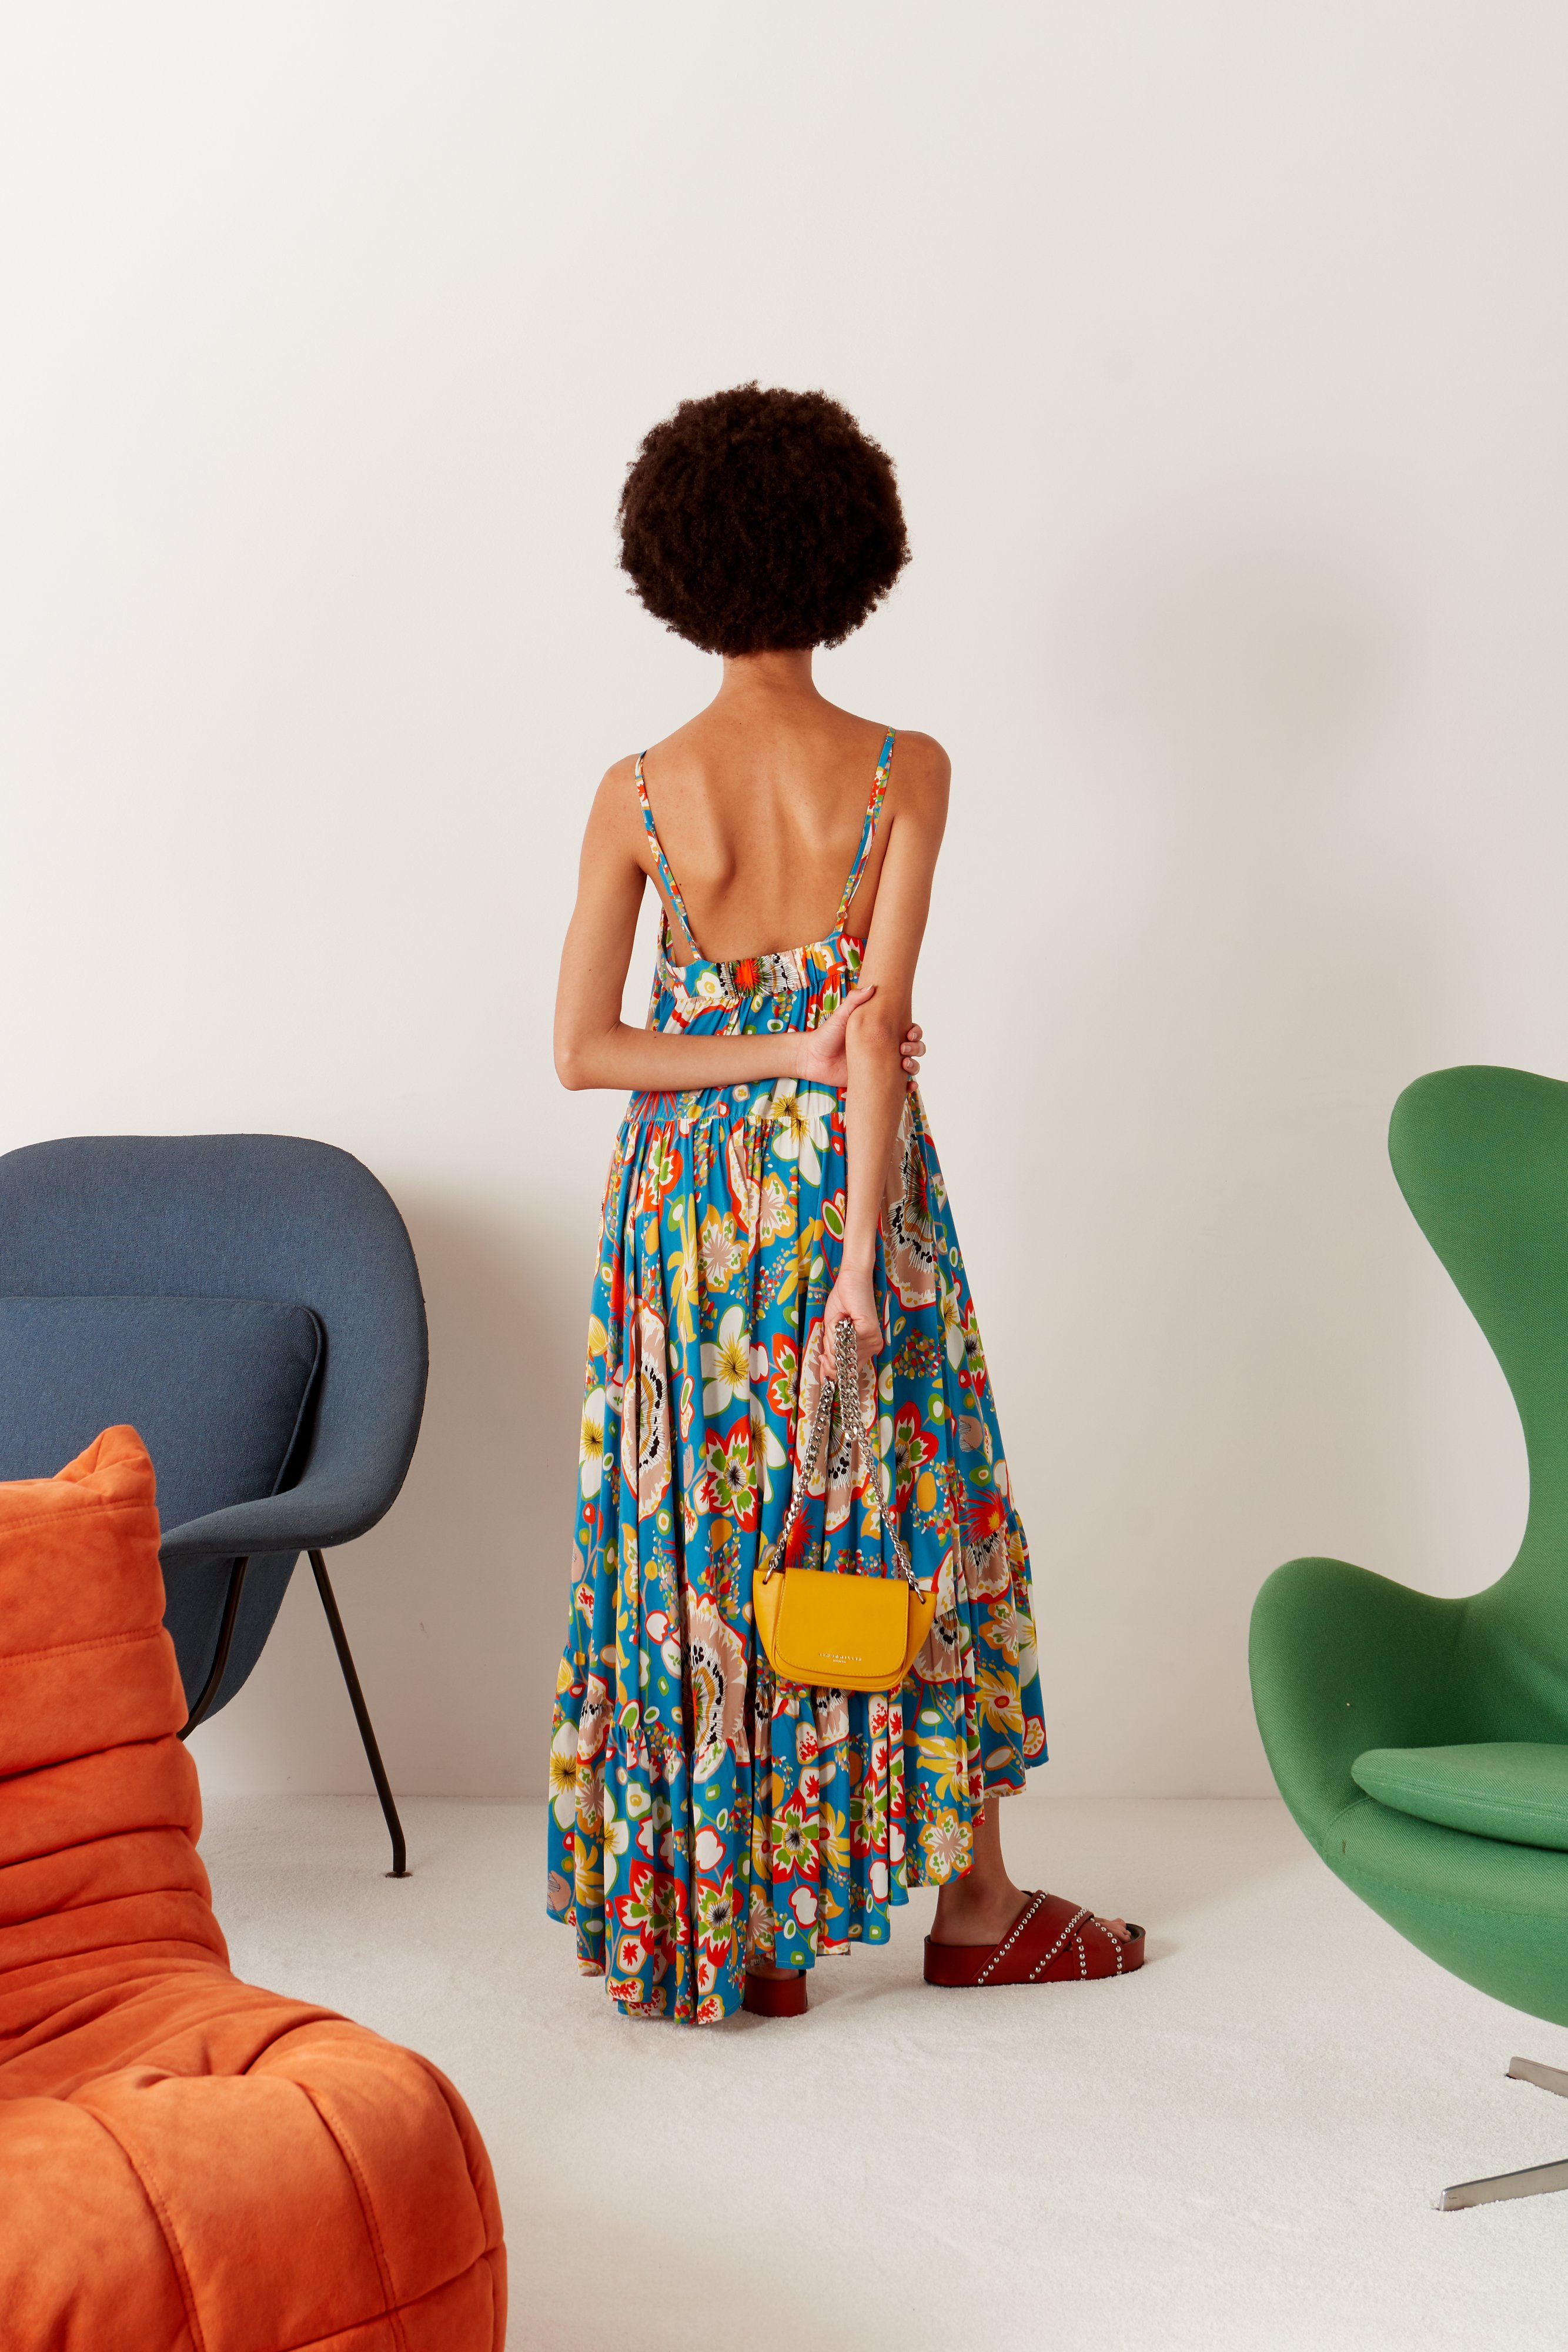 Pumpa Layered Tank Dress in Blue Floral Print by Simon Miller - 3